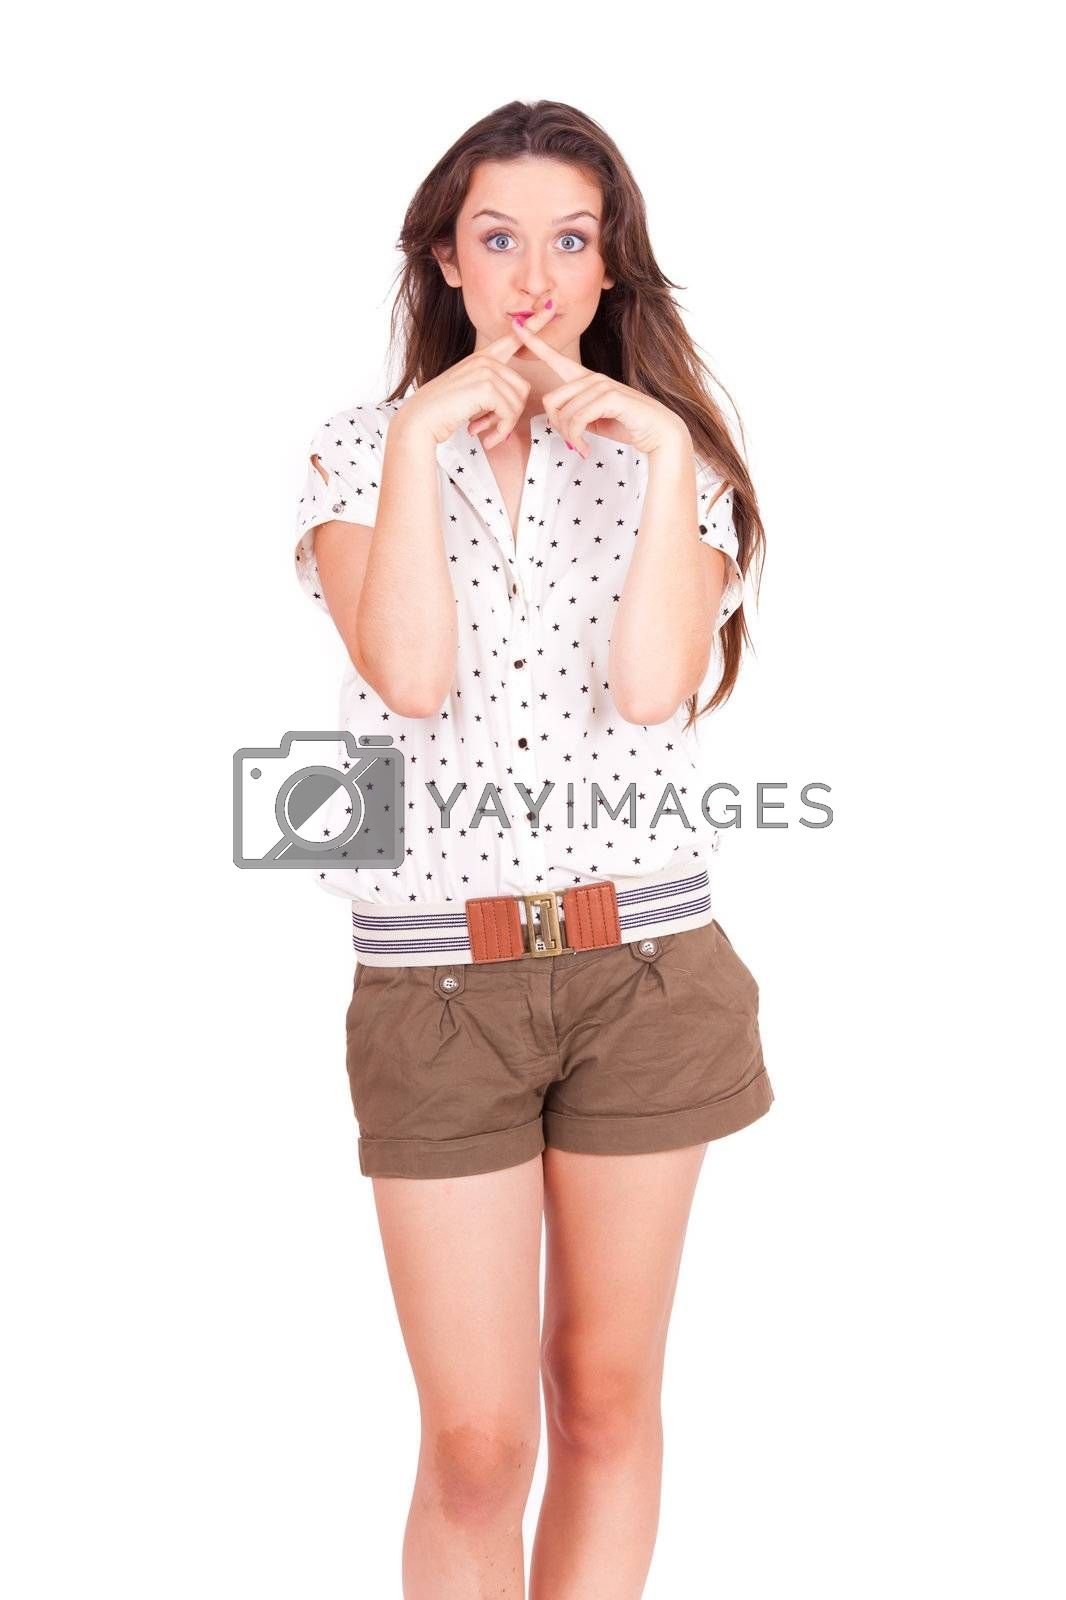 young beautiful women don't tell a secret on white background